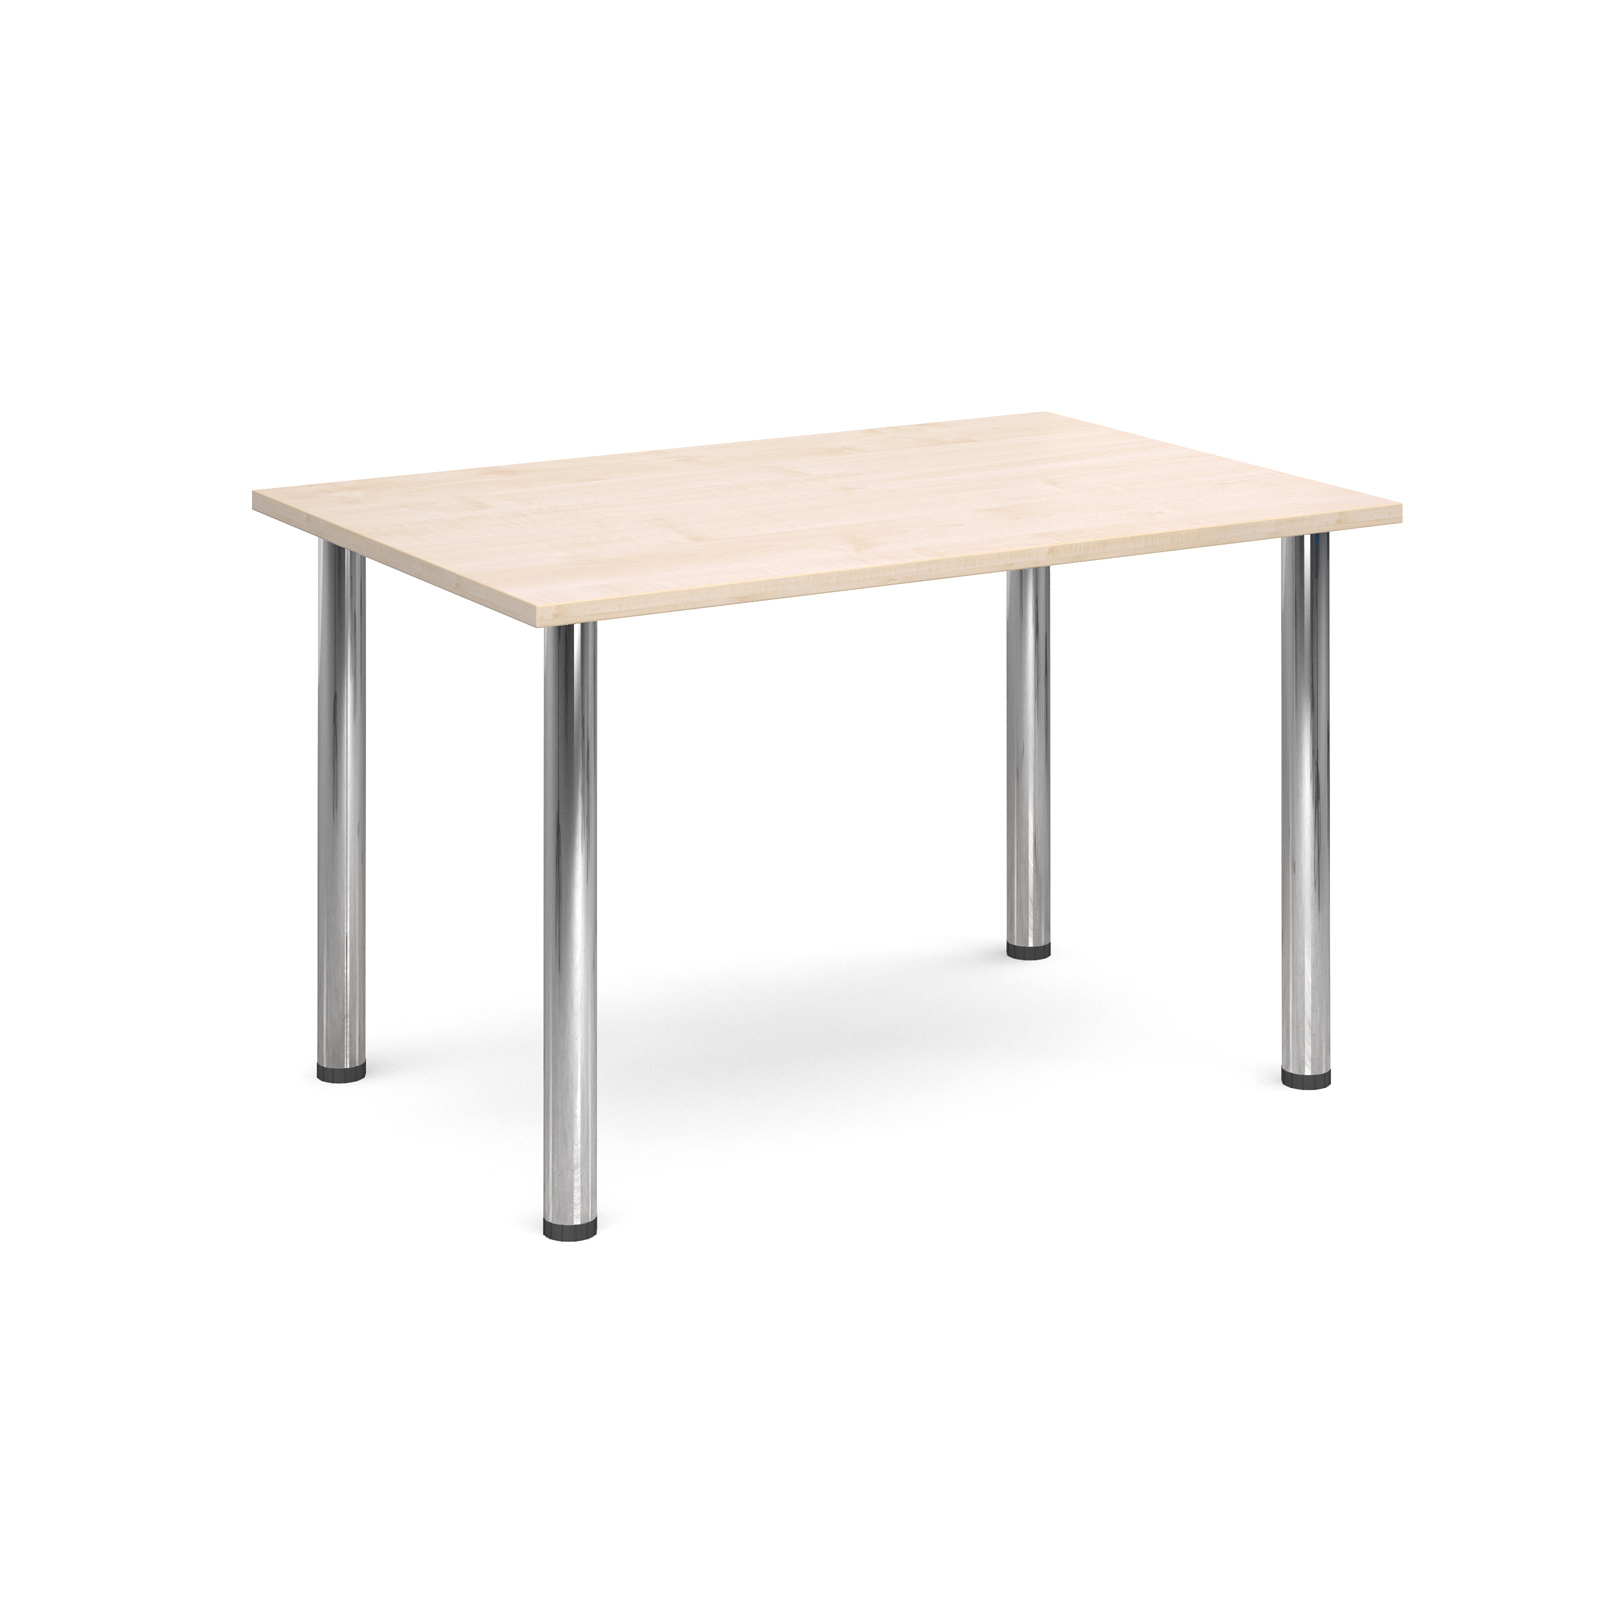 Rectangular deluxe chrome radial leg table 1300mm x 800mm - maple